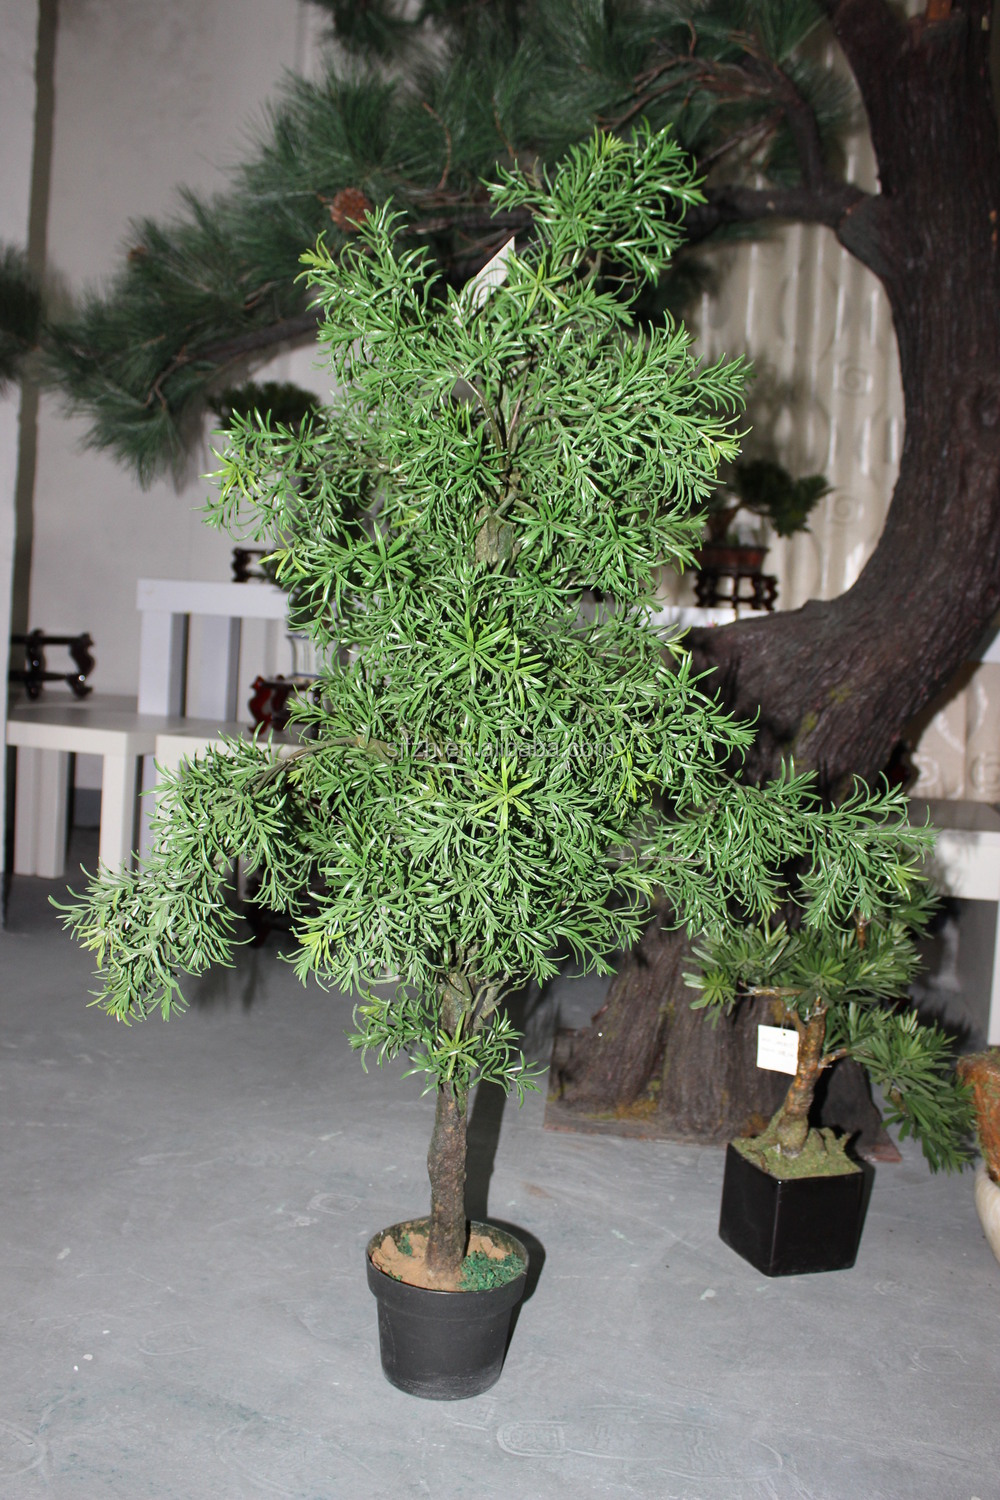 Apanese bonsai types of large outdoor artificial trees for Different kinds of bonsai trees